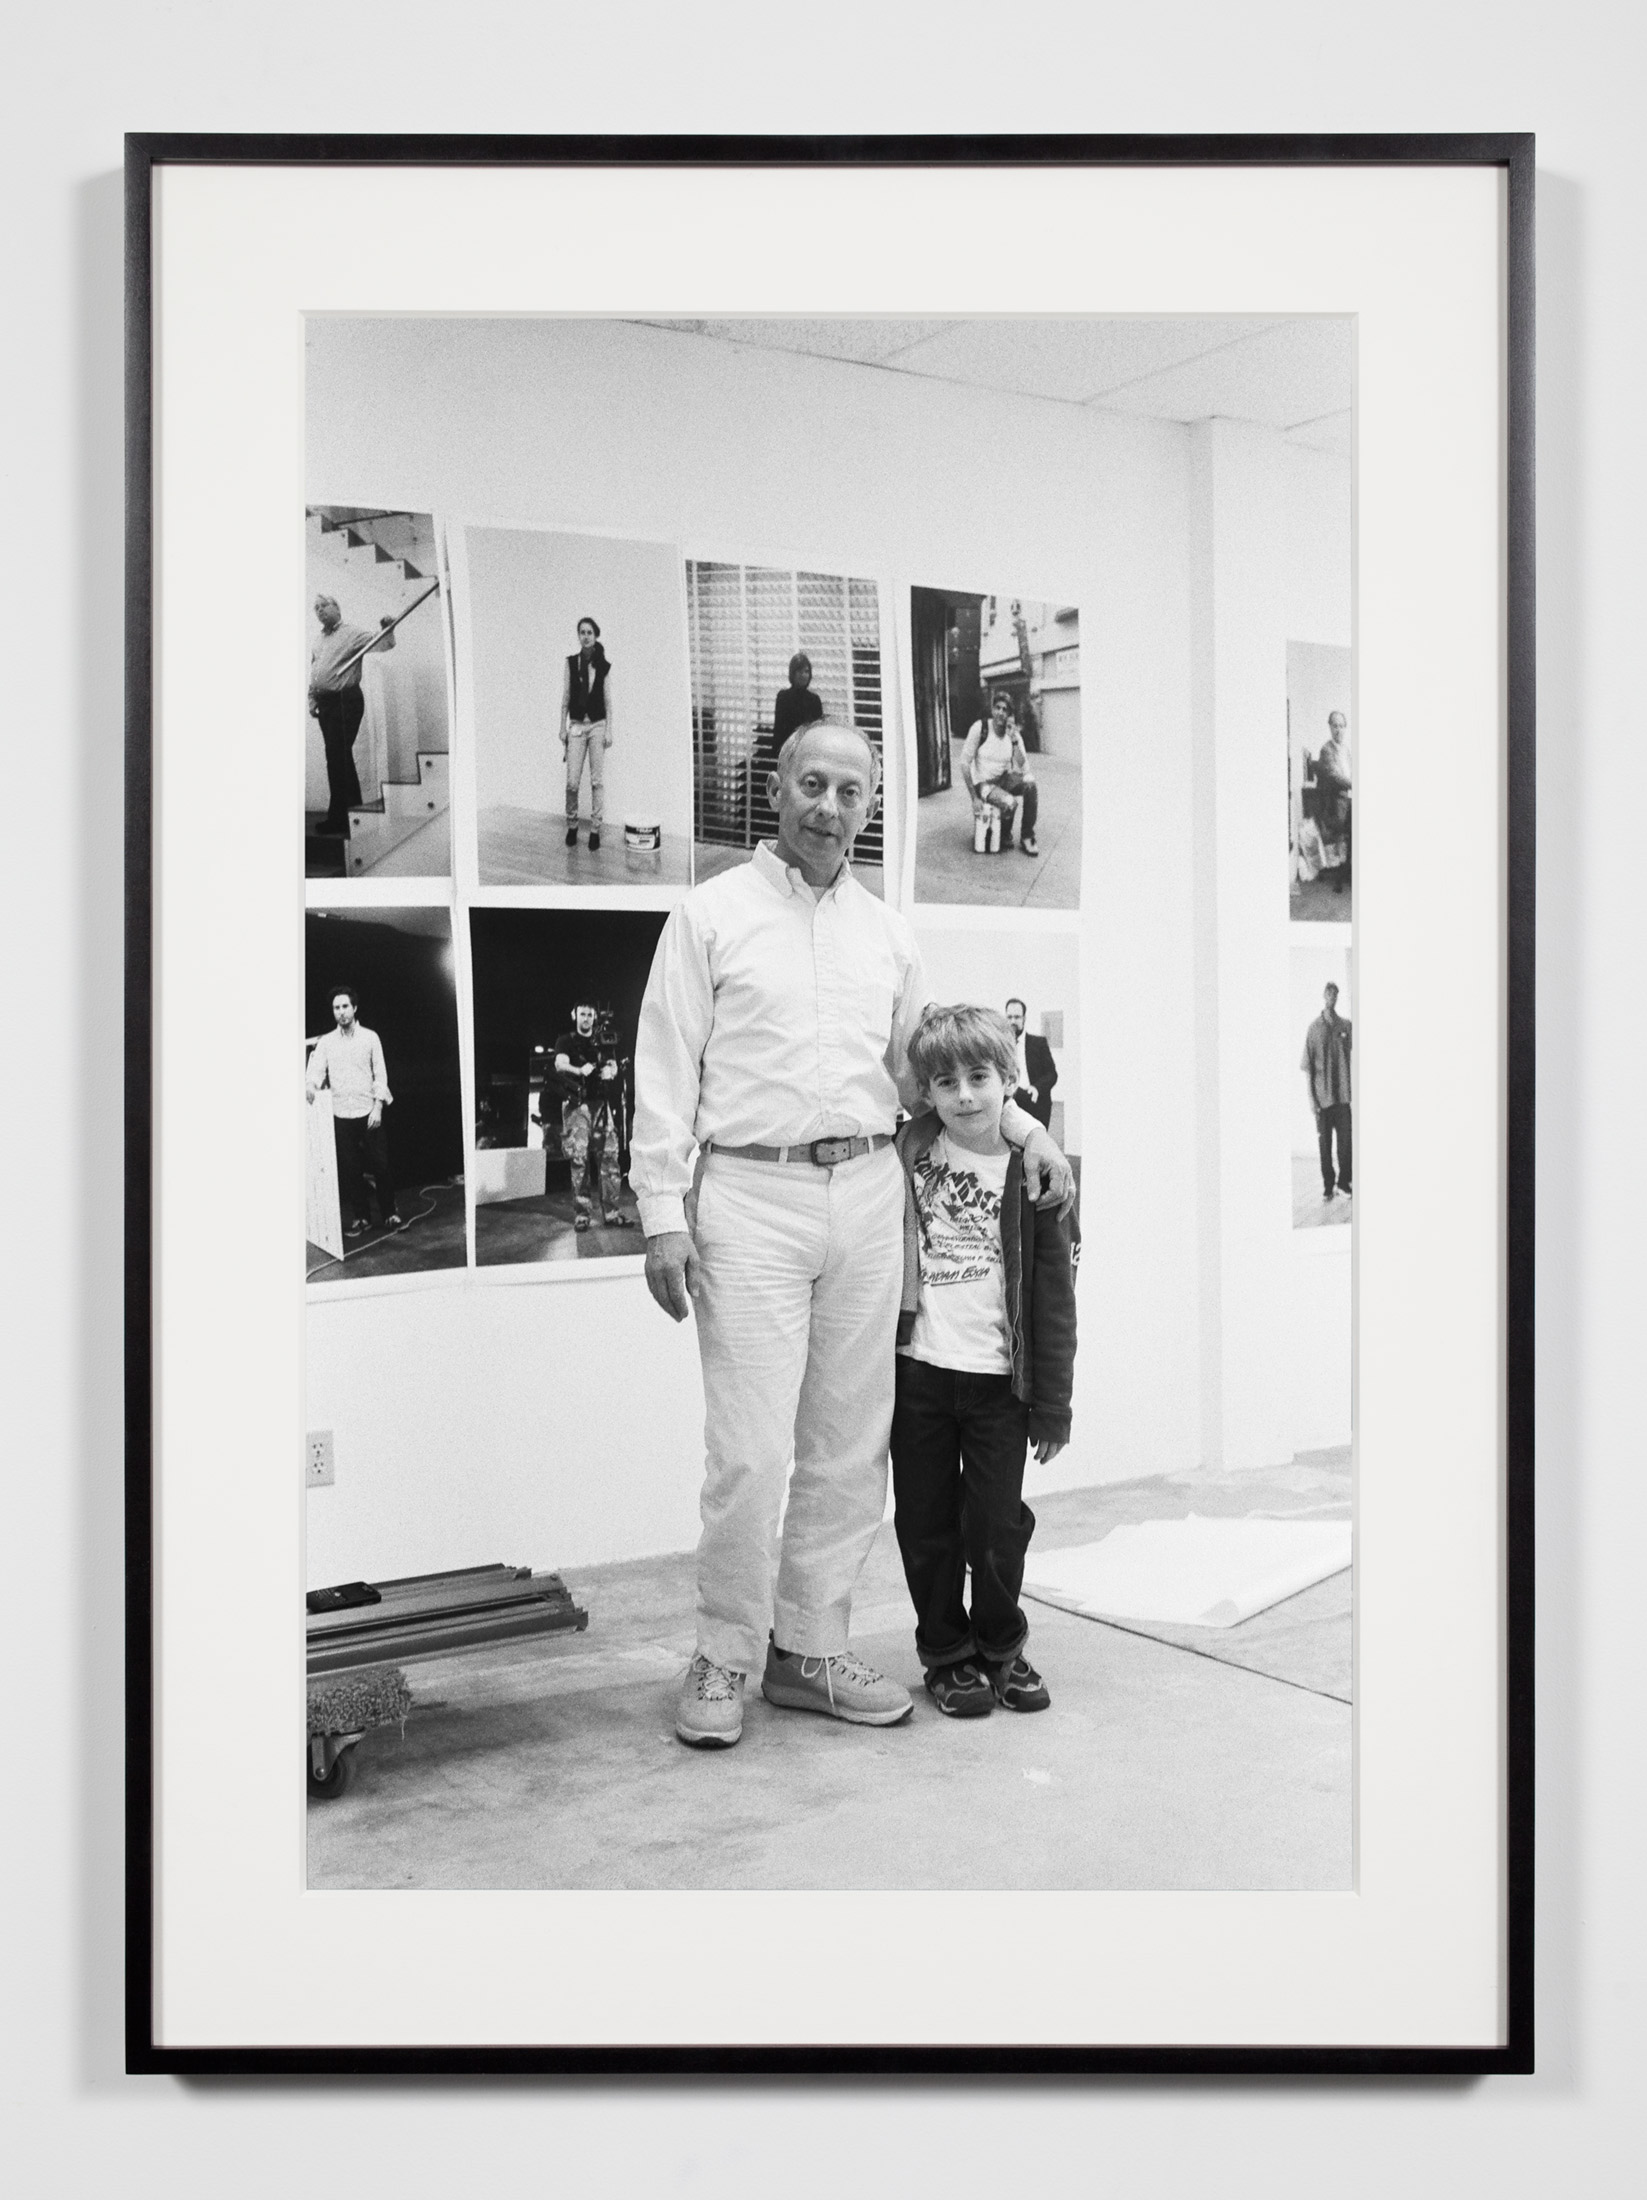 Publisher with Son, Los Angeles, California, April 3, 2009    2011   Epson Ultrachrome K3 archival ink jet print on Hahnemühle Photo Rag paper  36 3/8 x 26 3/8 inches   Industrial Portraits, 2008–